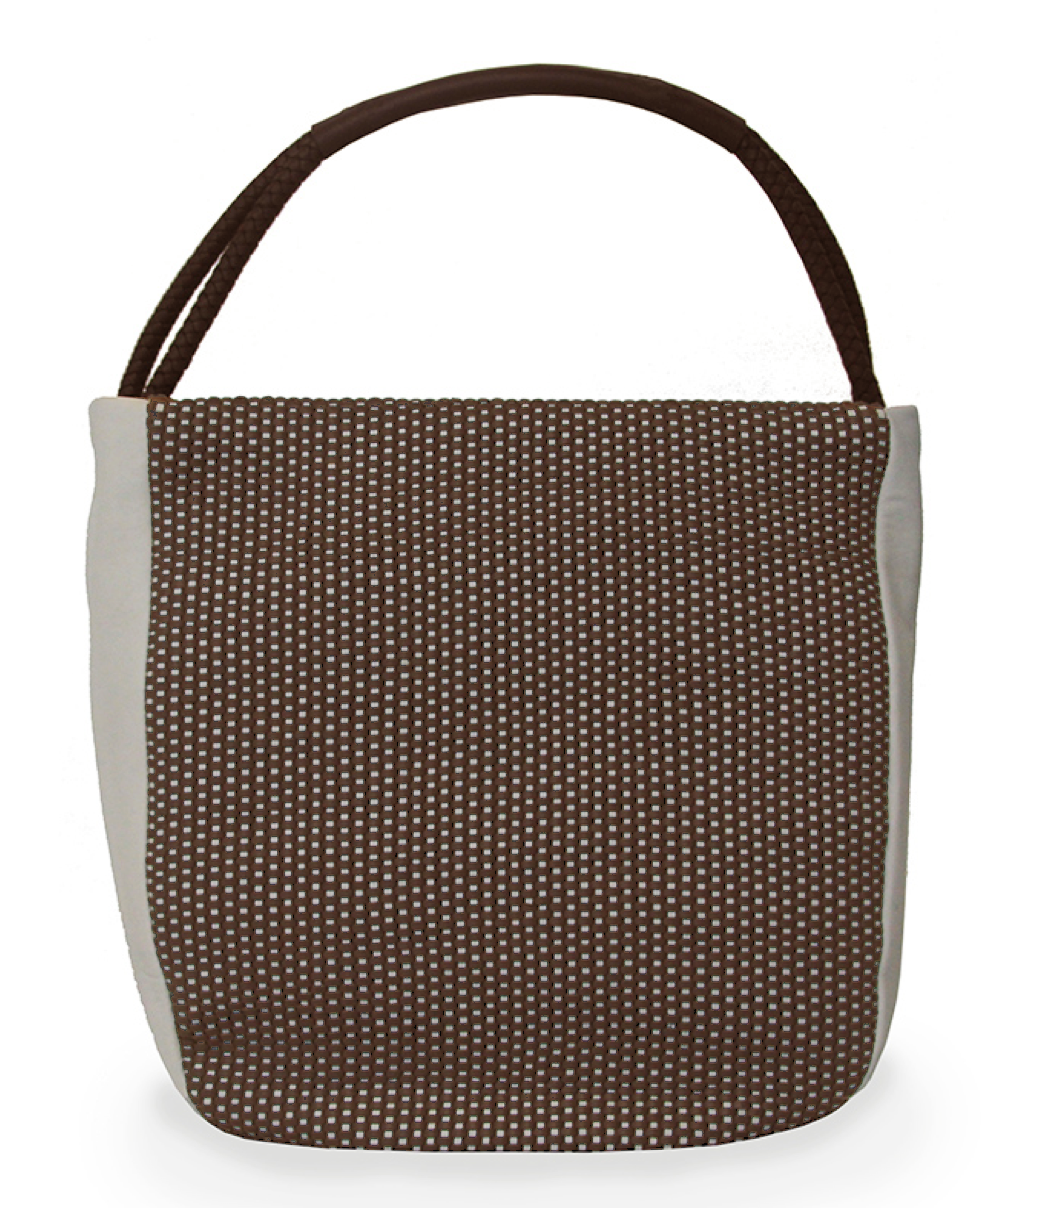 The Mesh Interlace Hobo - Christopher Kon - Bag - TOPGEARNY